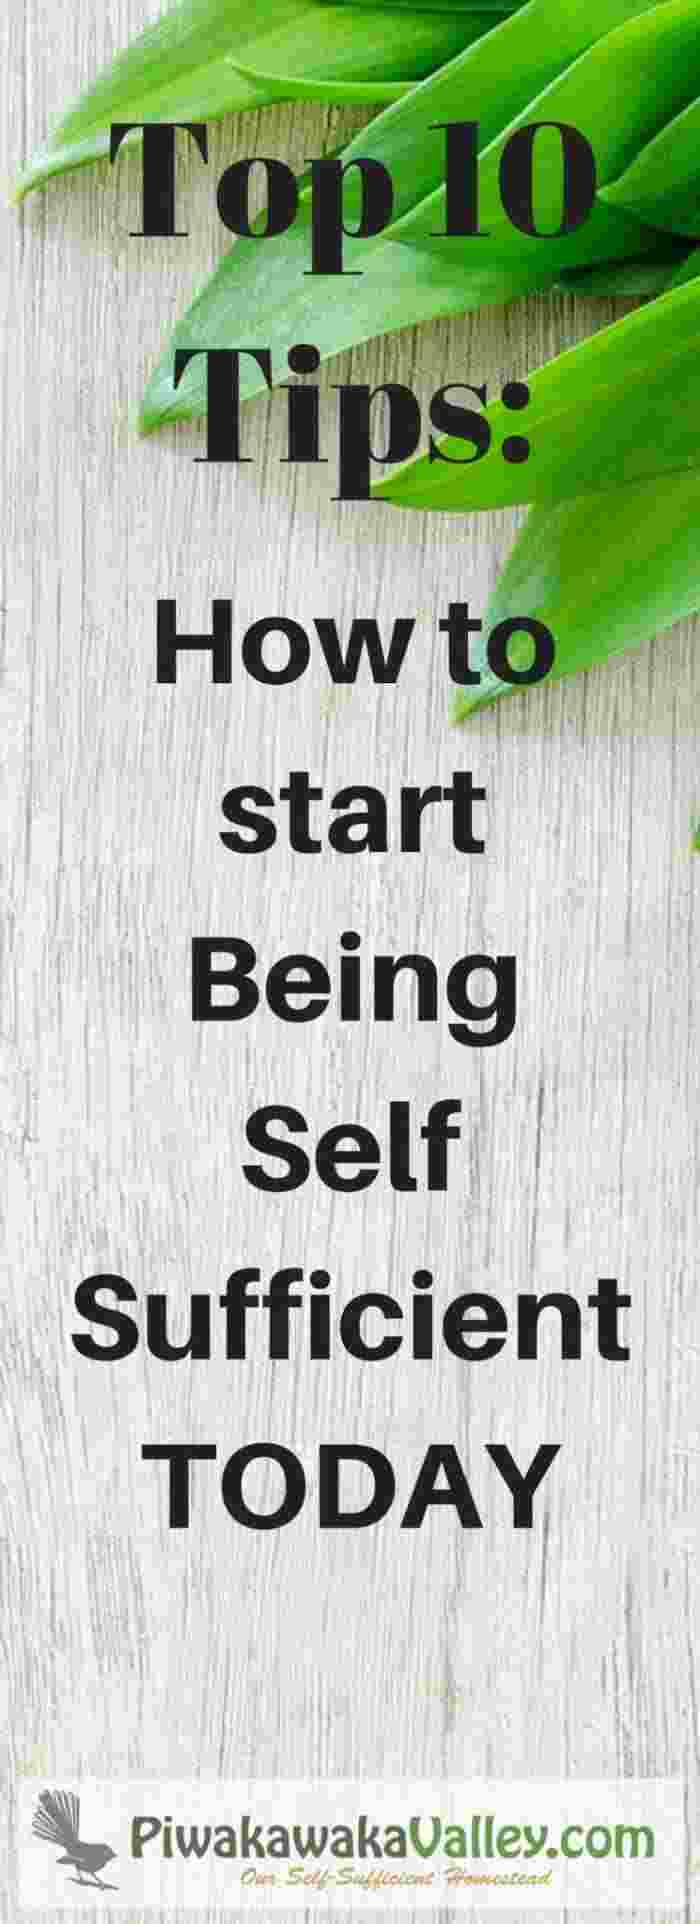 Being self sufficient top 10 tips on how to start today for How to start homesteading today